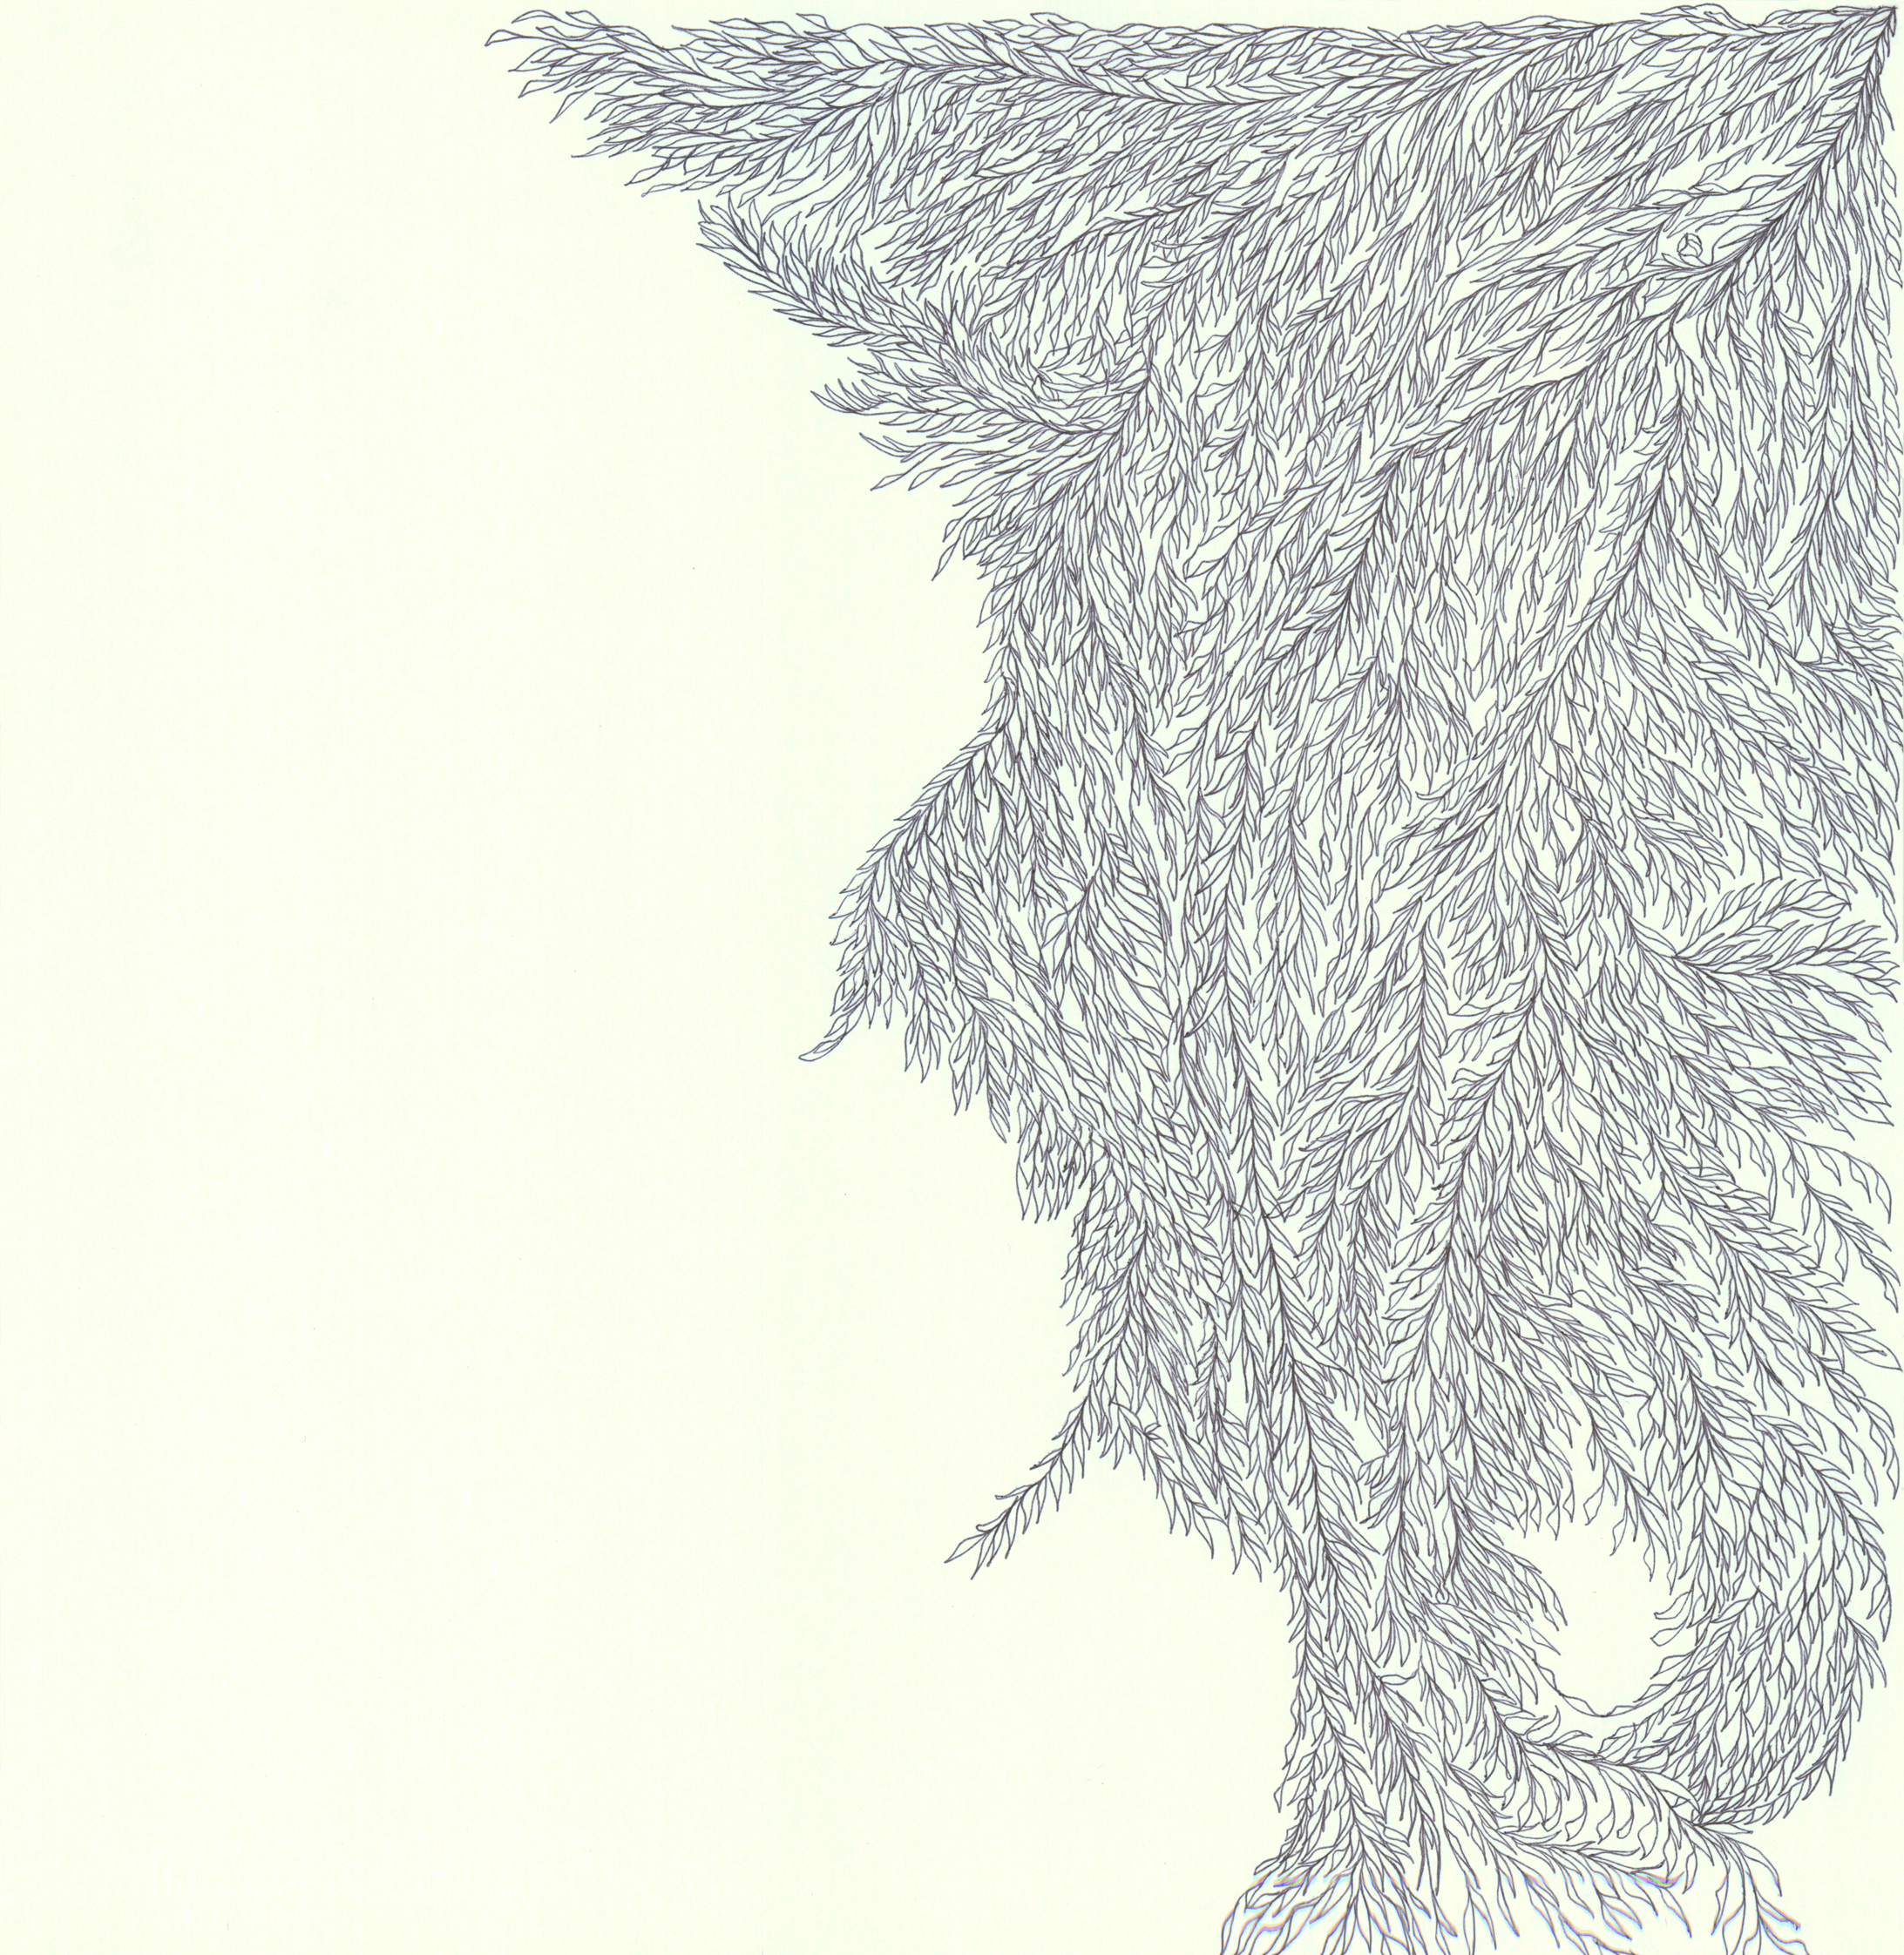 Black ballpoint pen on paper_003 (2013).jpg